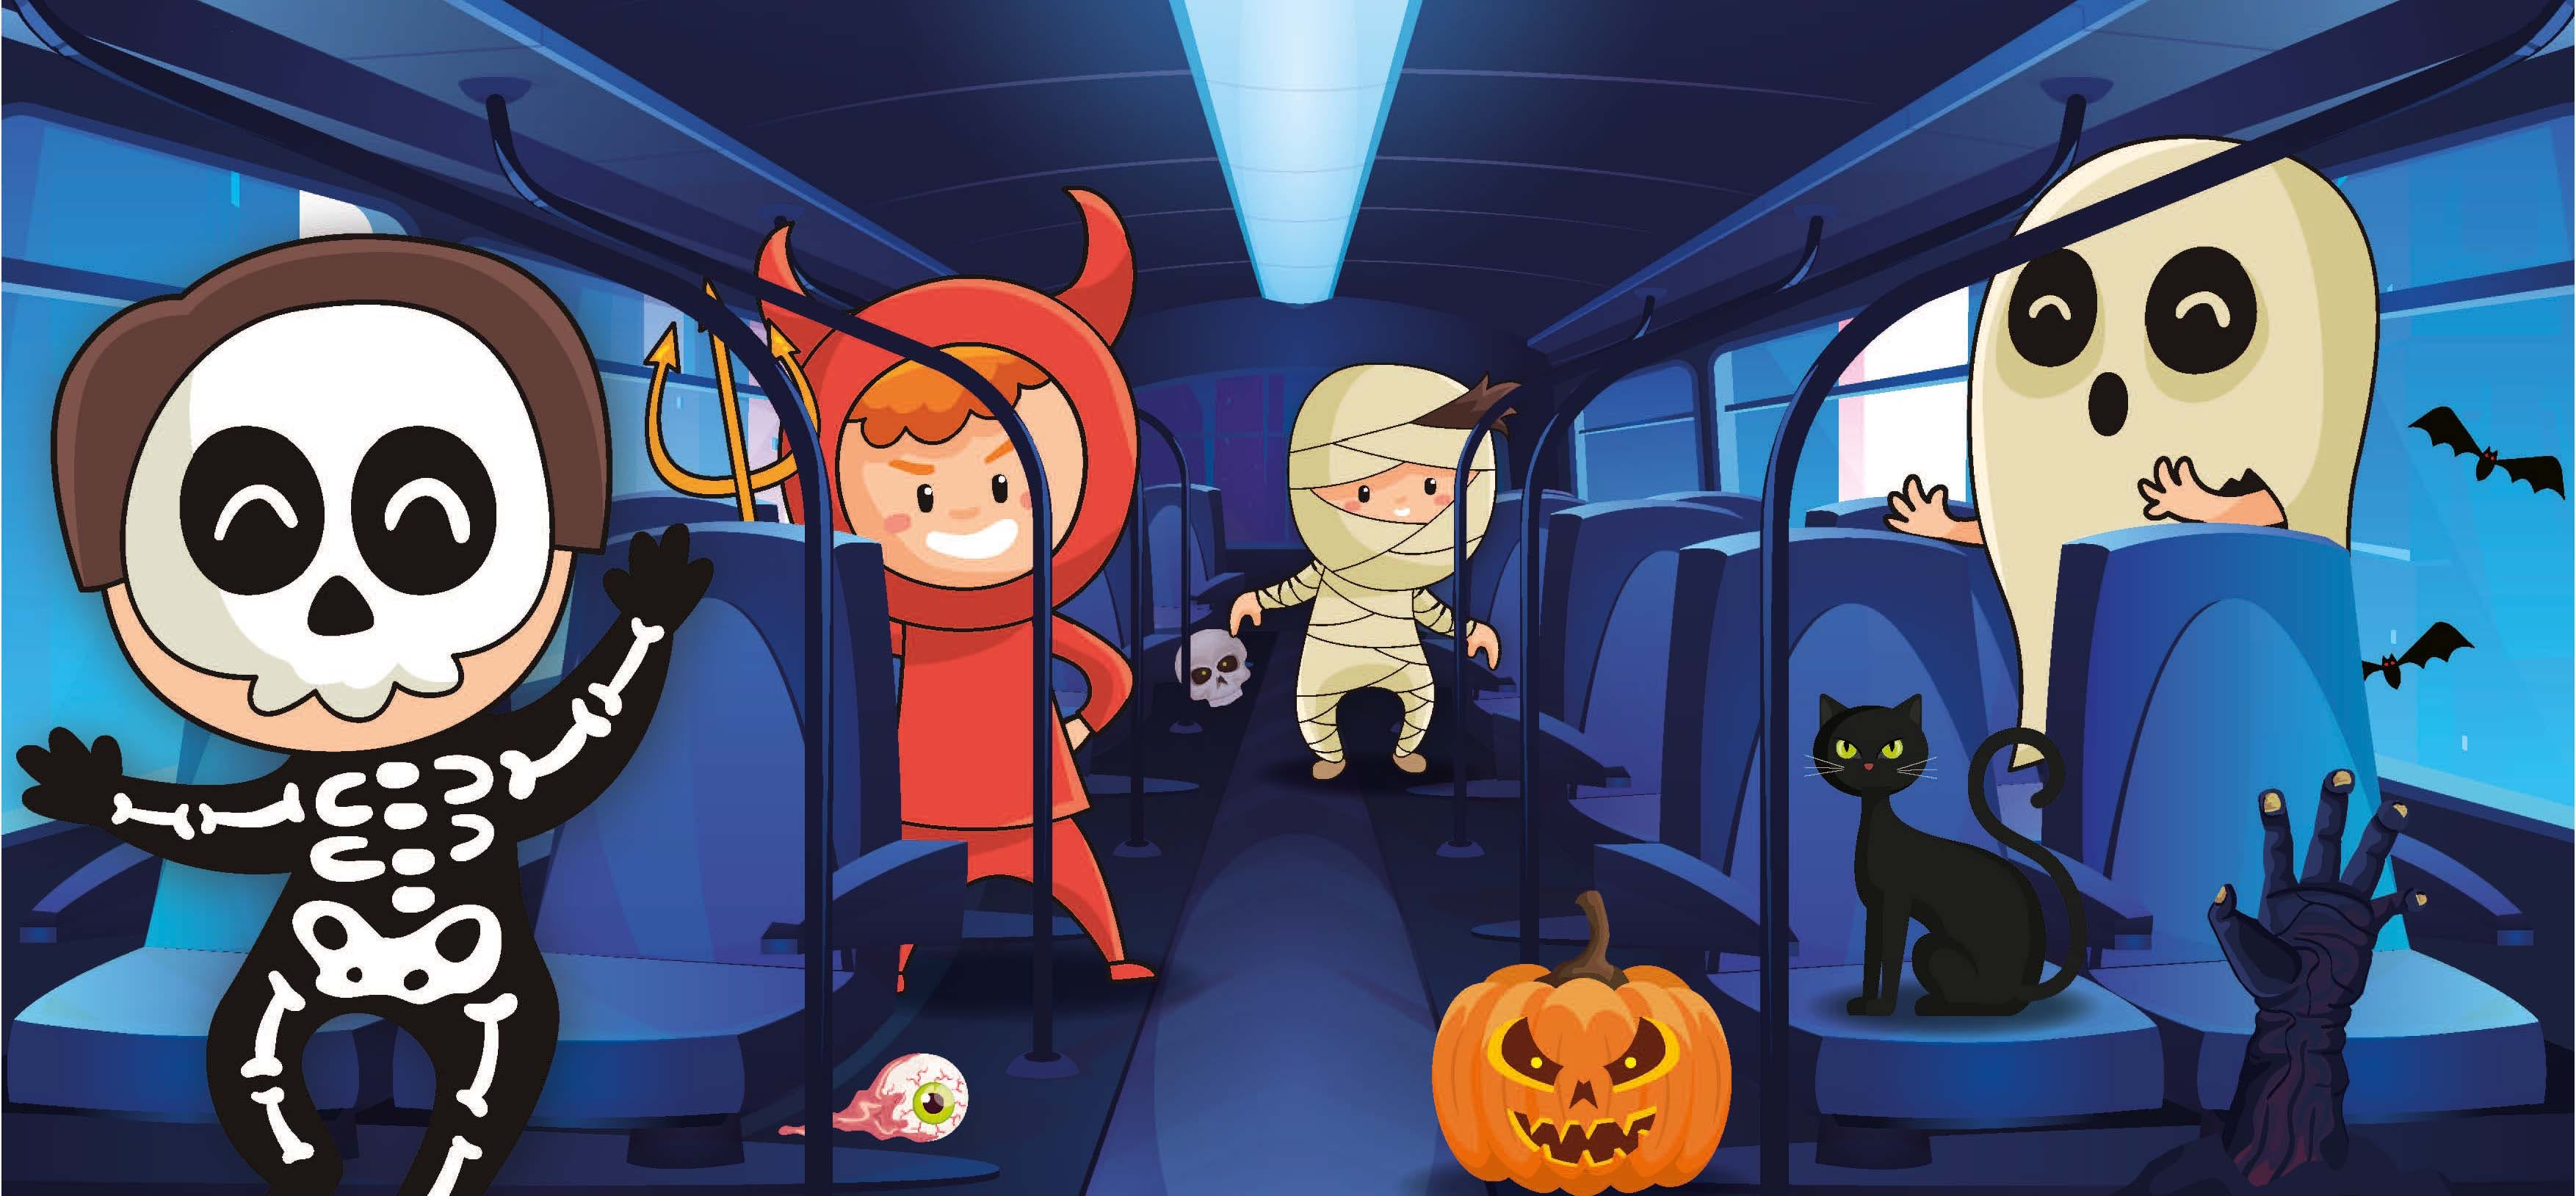 A cartoon of the inside of a Halloween bus with children dressed up as a skeleton, devil, mummy and ghost